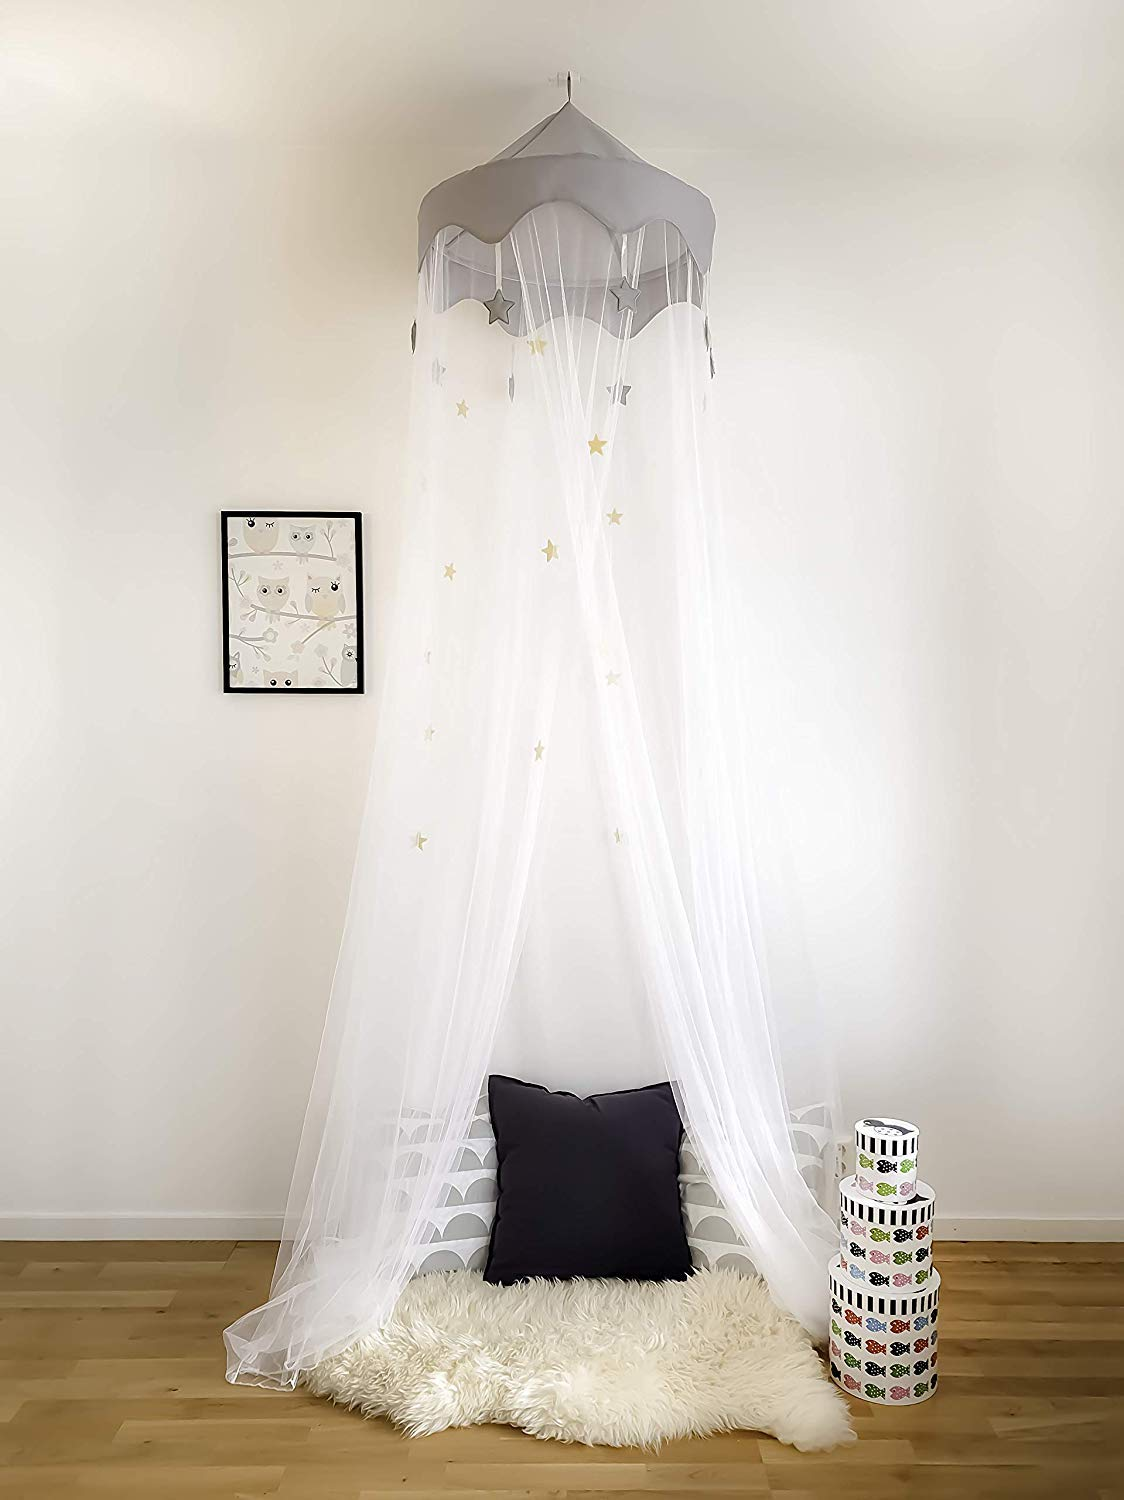 Nomad Nets Luxury Bed Canopy - Glowing Stars - Fits All Cribs and Beds - White Net - Gray Top-Crown - Hanging Above Bed Mosquito Net with Easy Installation ... : luxury canopy - afamca.org